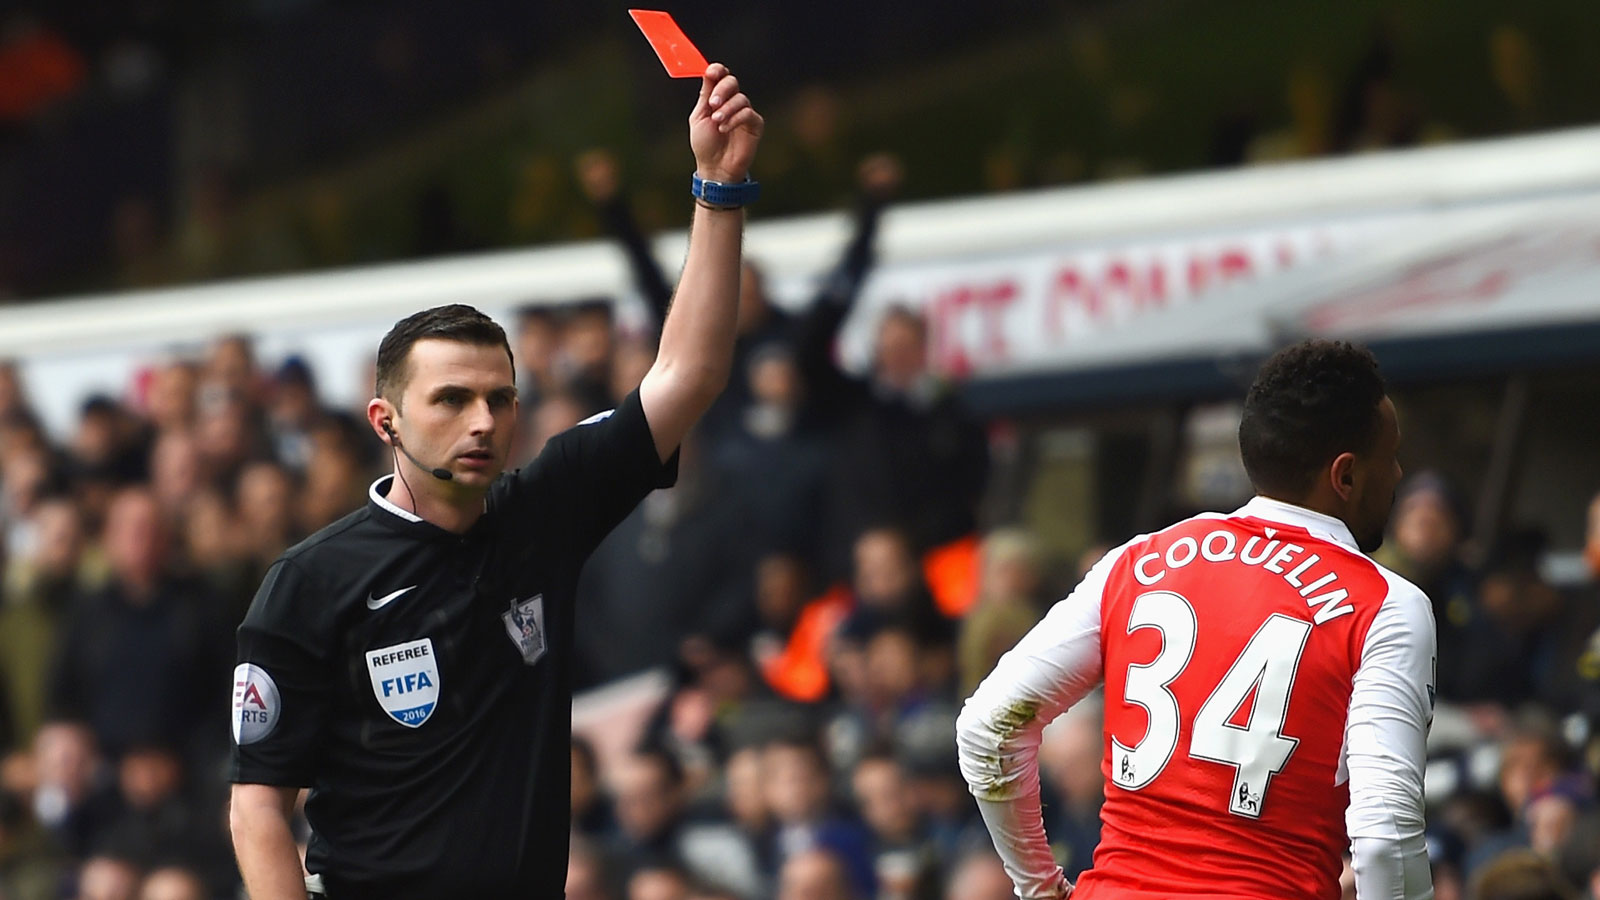 Coquelin apologizes to Arsenal fans after Spurs sending off